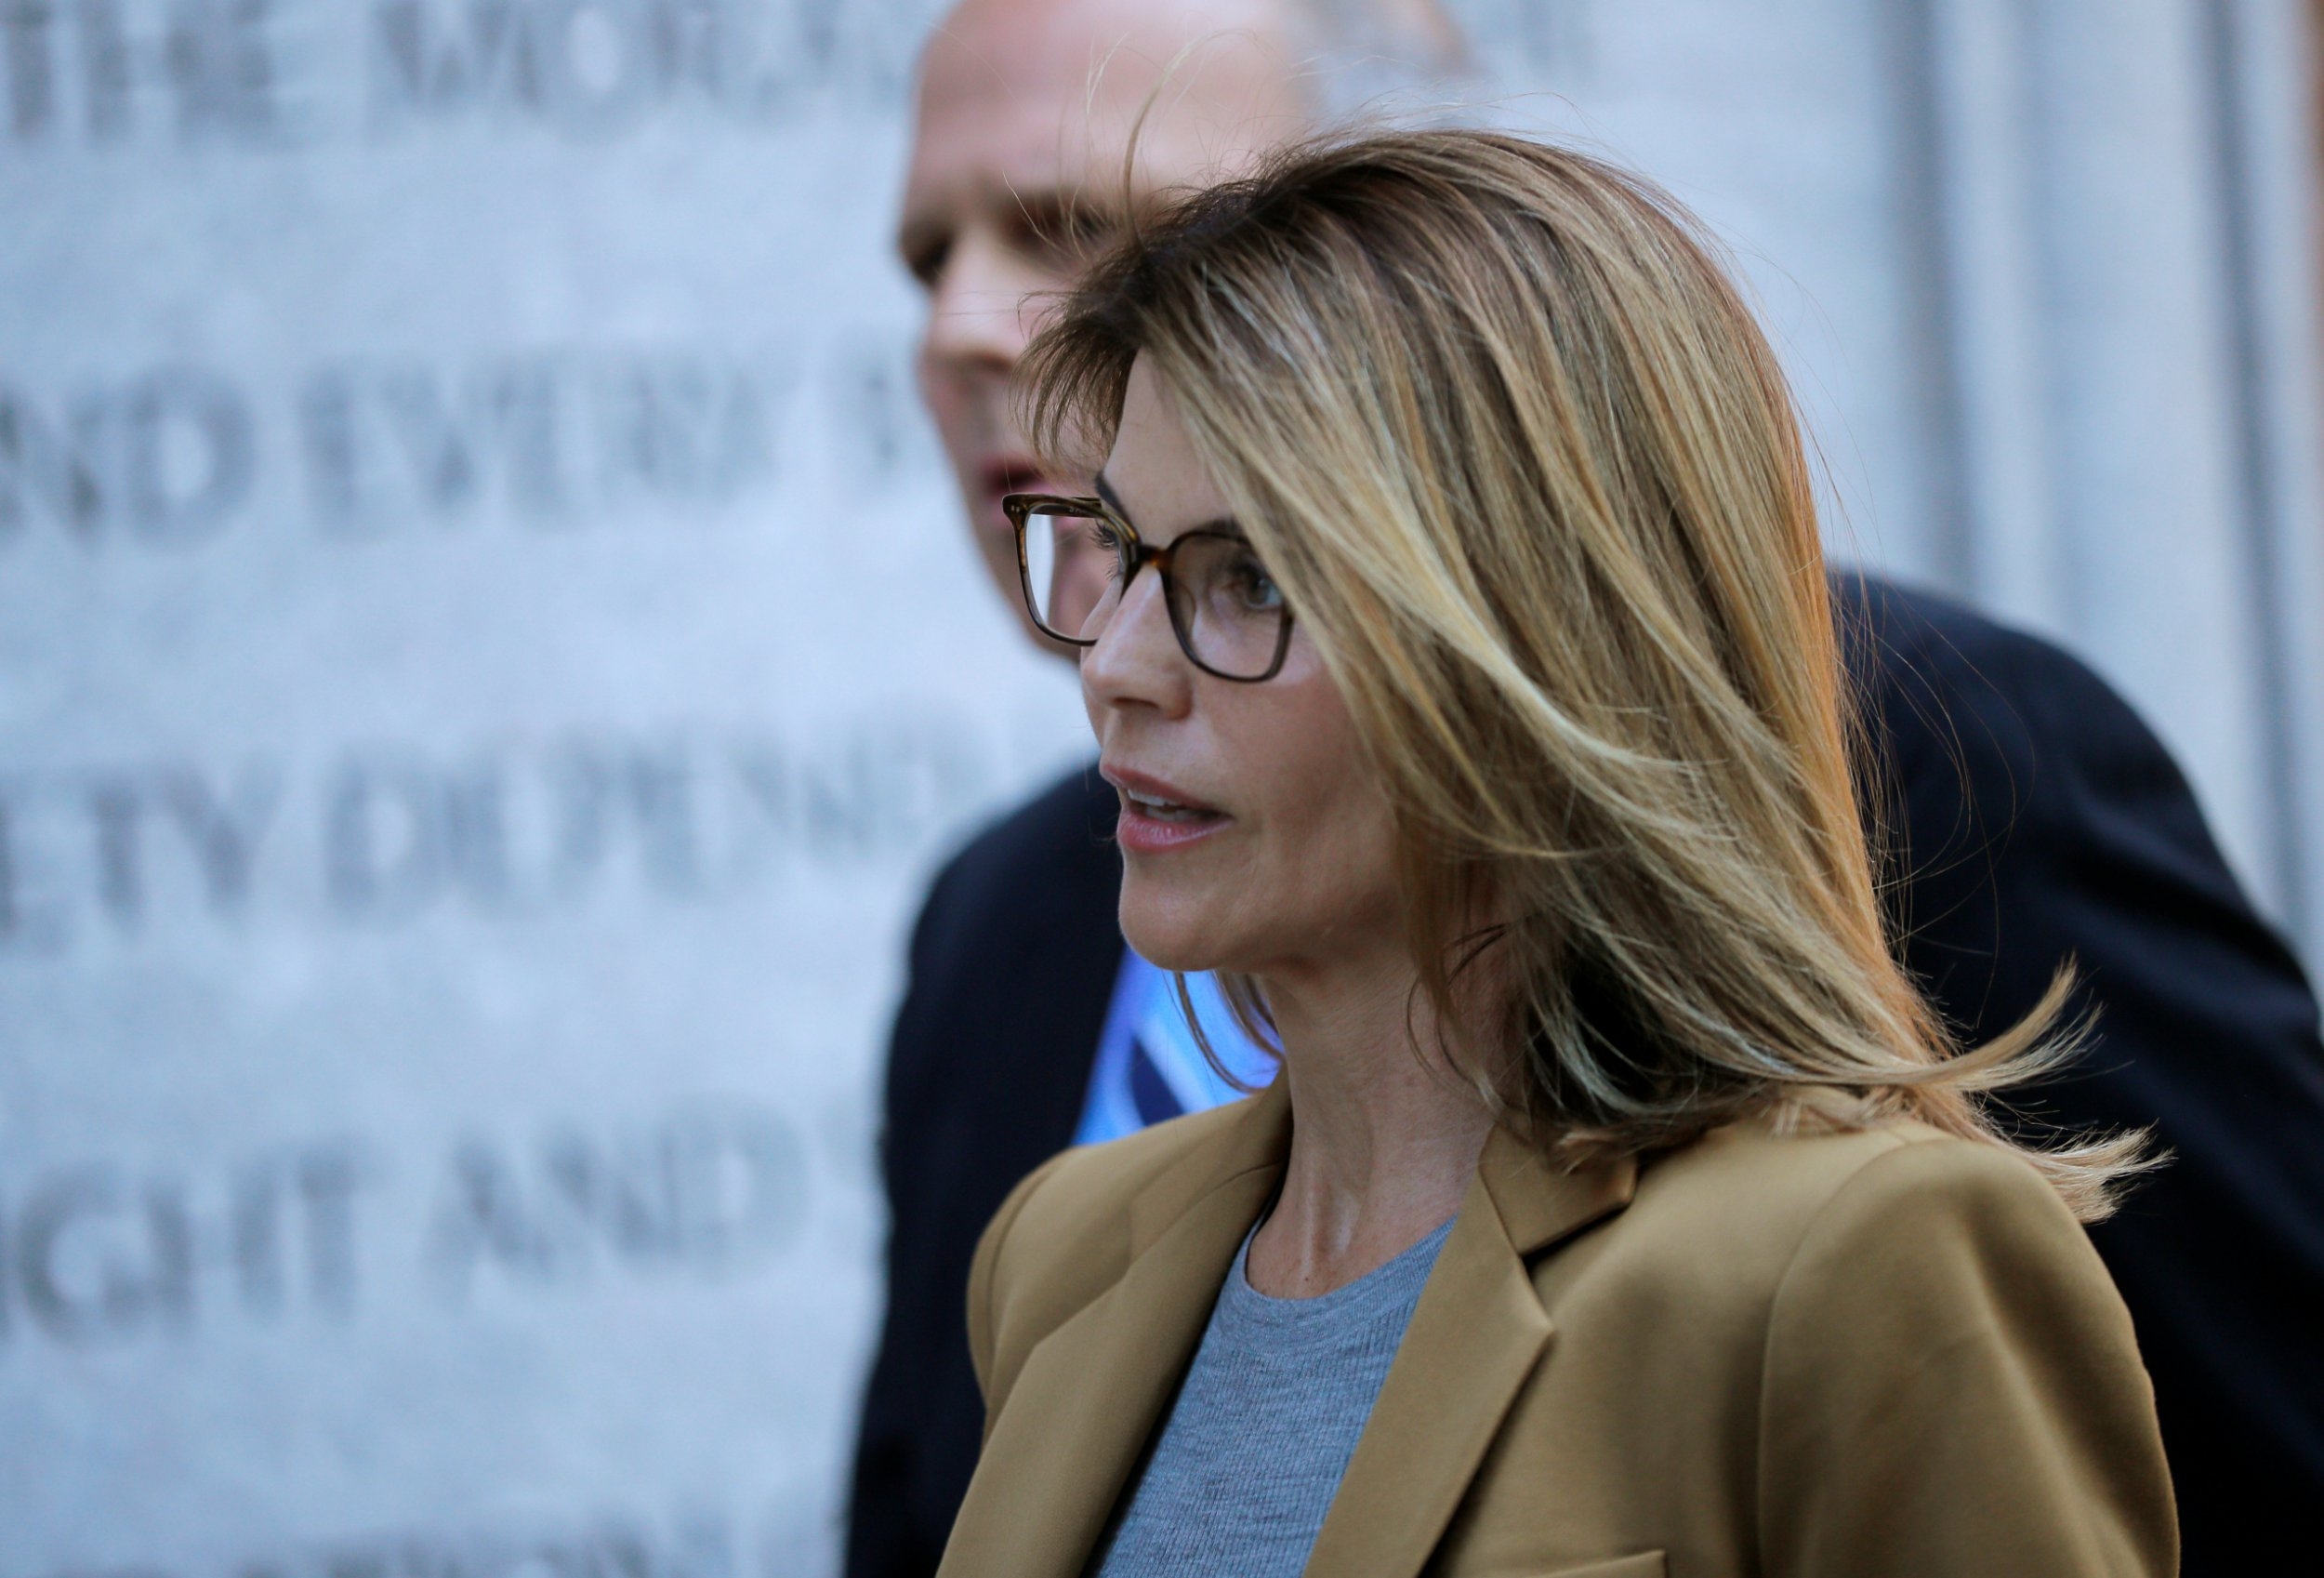 Lori Loughlin 'relying on faith' amid investigation into college admissions scandal as Felicity Huffman pleads guilty